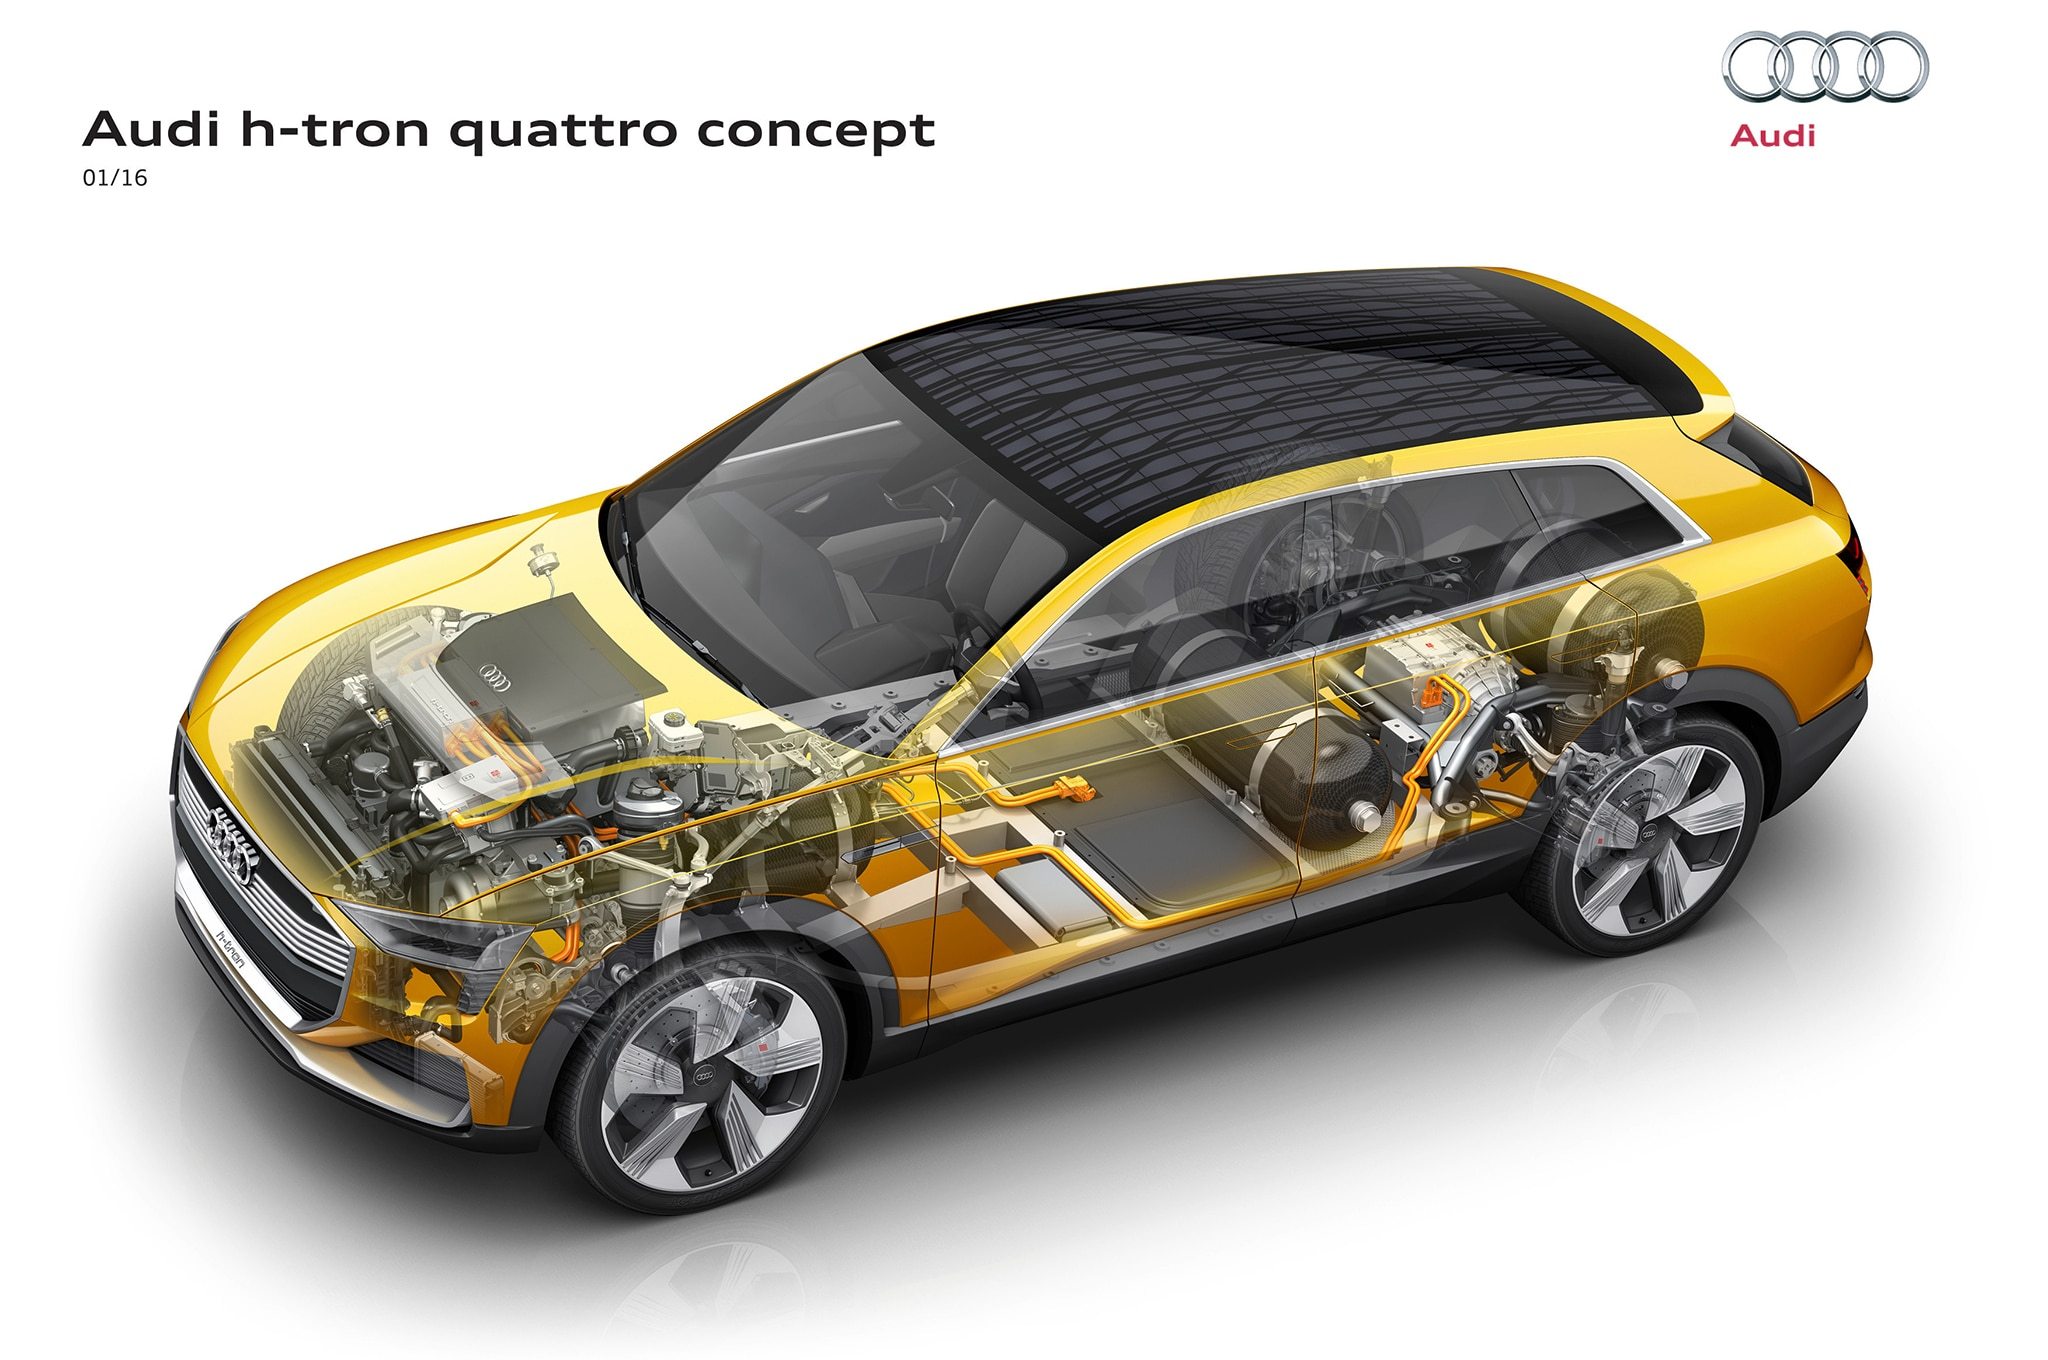 Audi Awd Diagram Explained Wiring Diagrams 2009 Q7 9 Cool Things To Know About The H Tron Concept Transmission